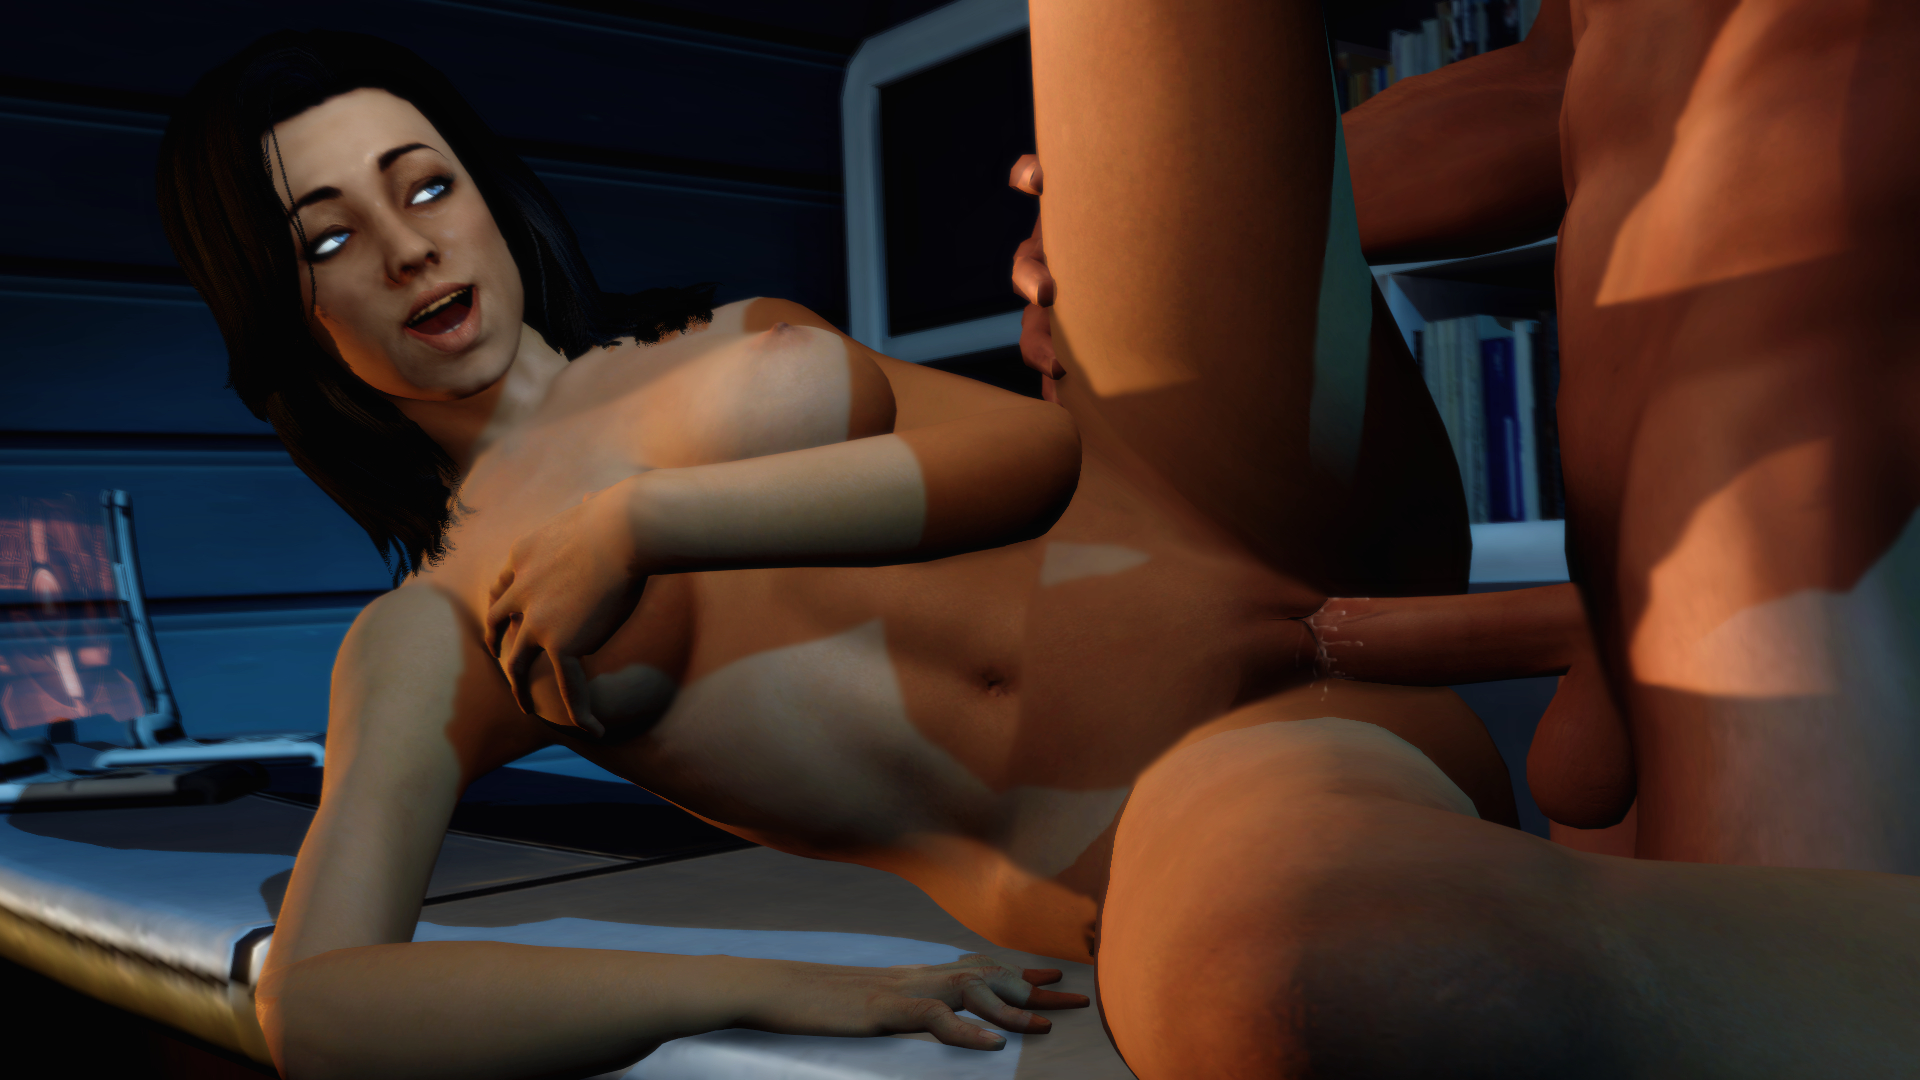 Mass effect 2 sex mod adult clips